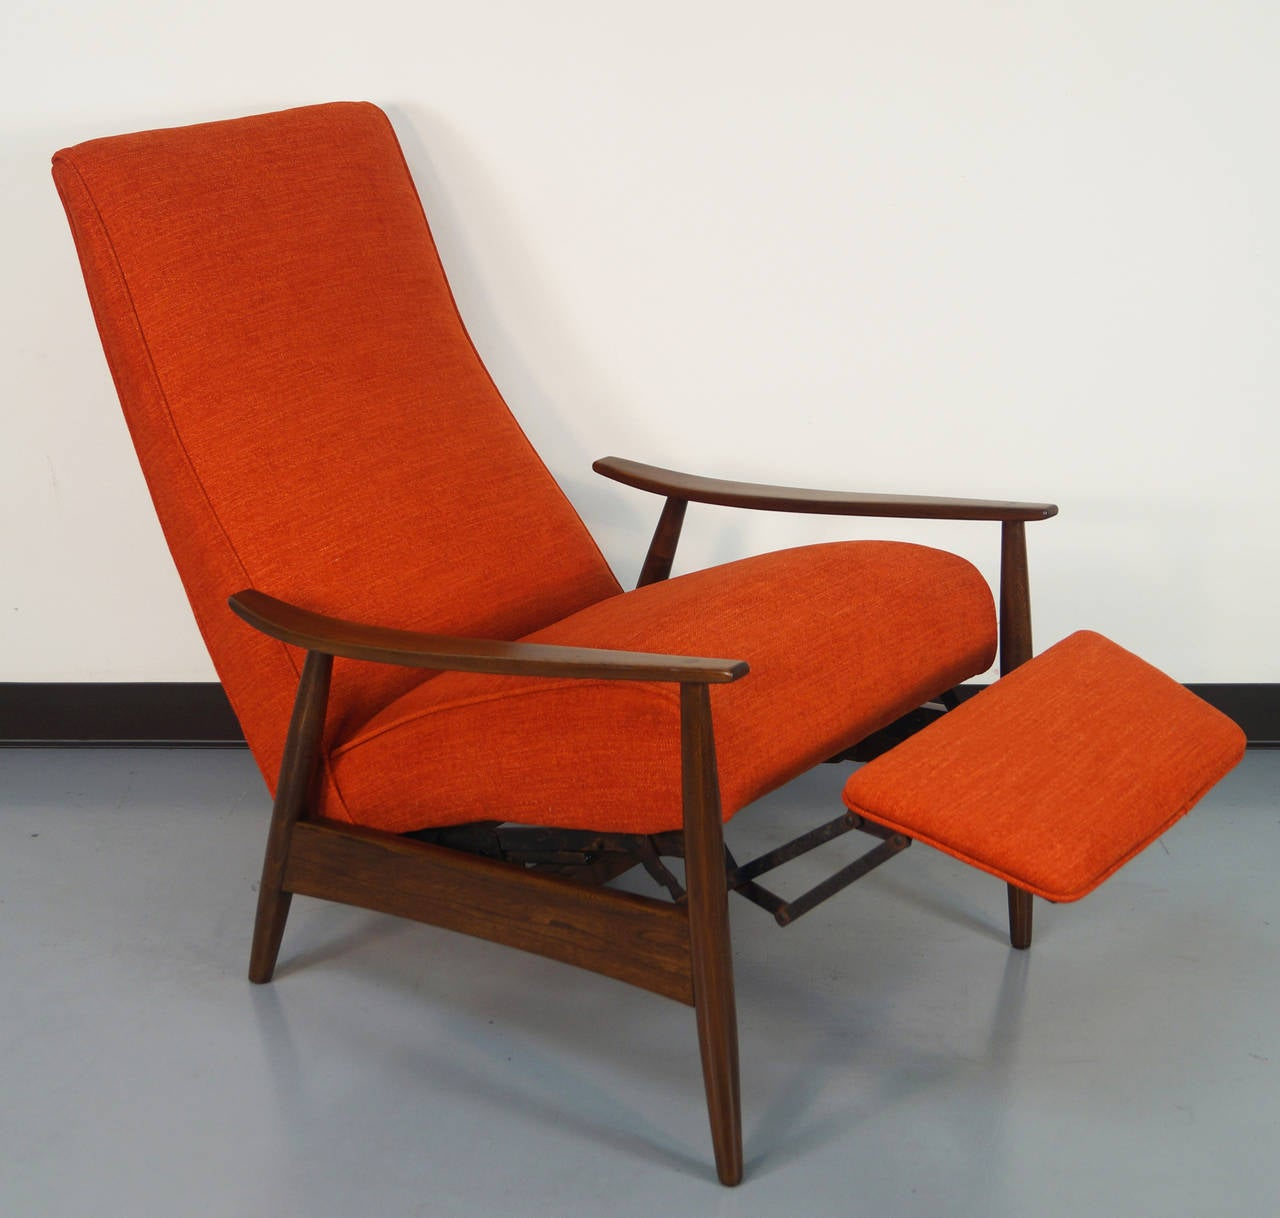 Reclining Lounge Chair Vintage Reclining Lounge Chair By Milo Baughman At 1stdibs